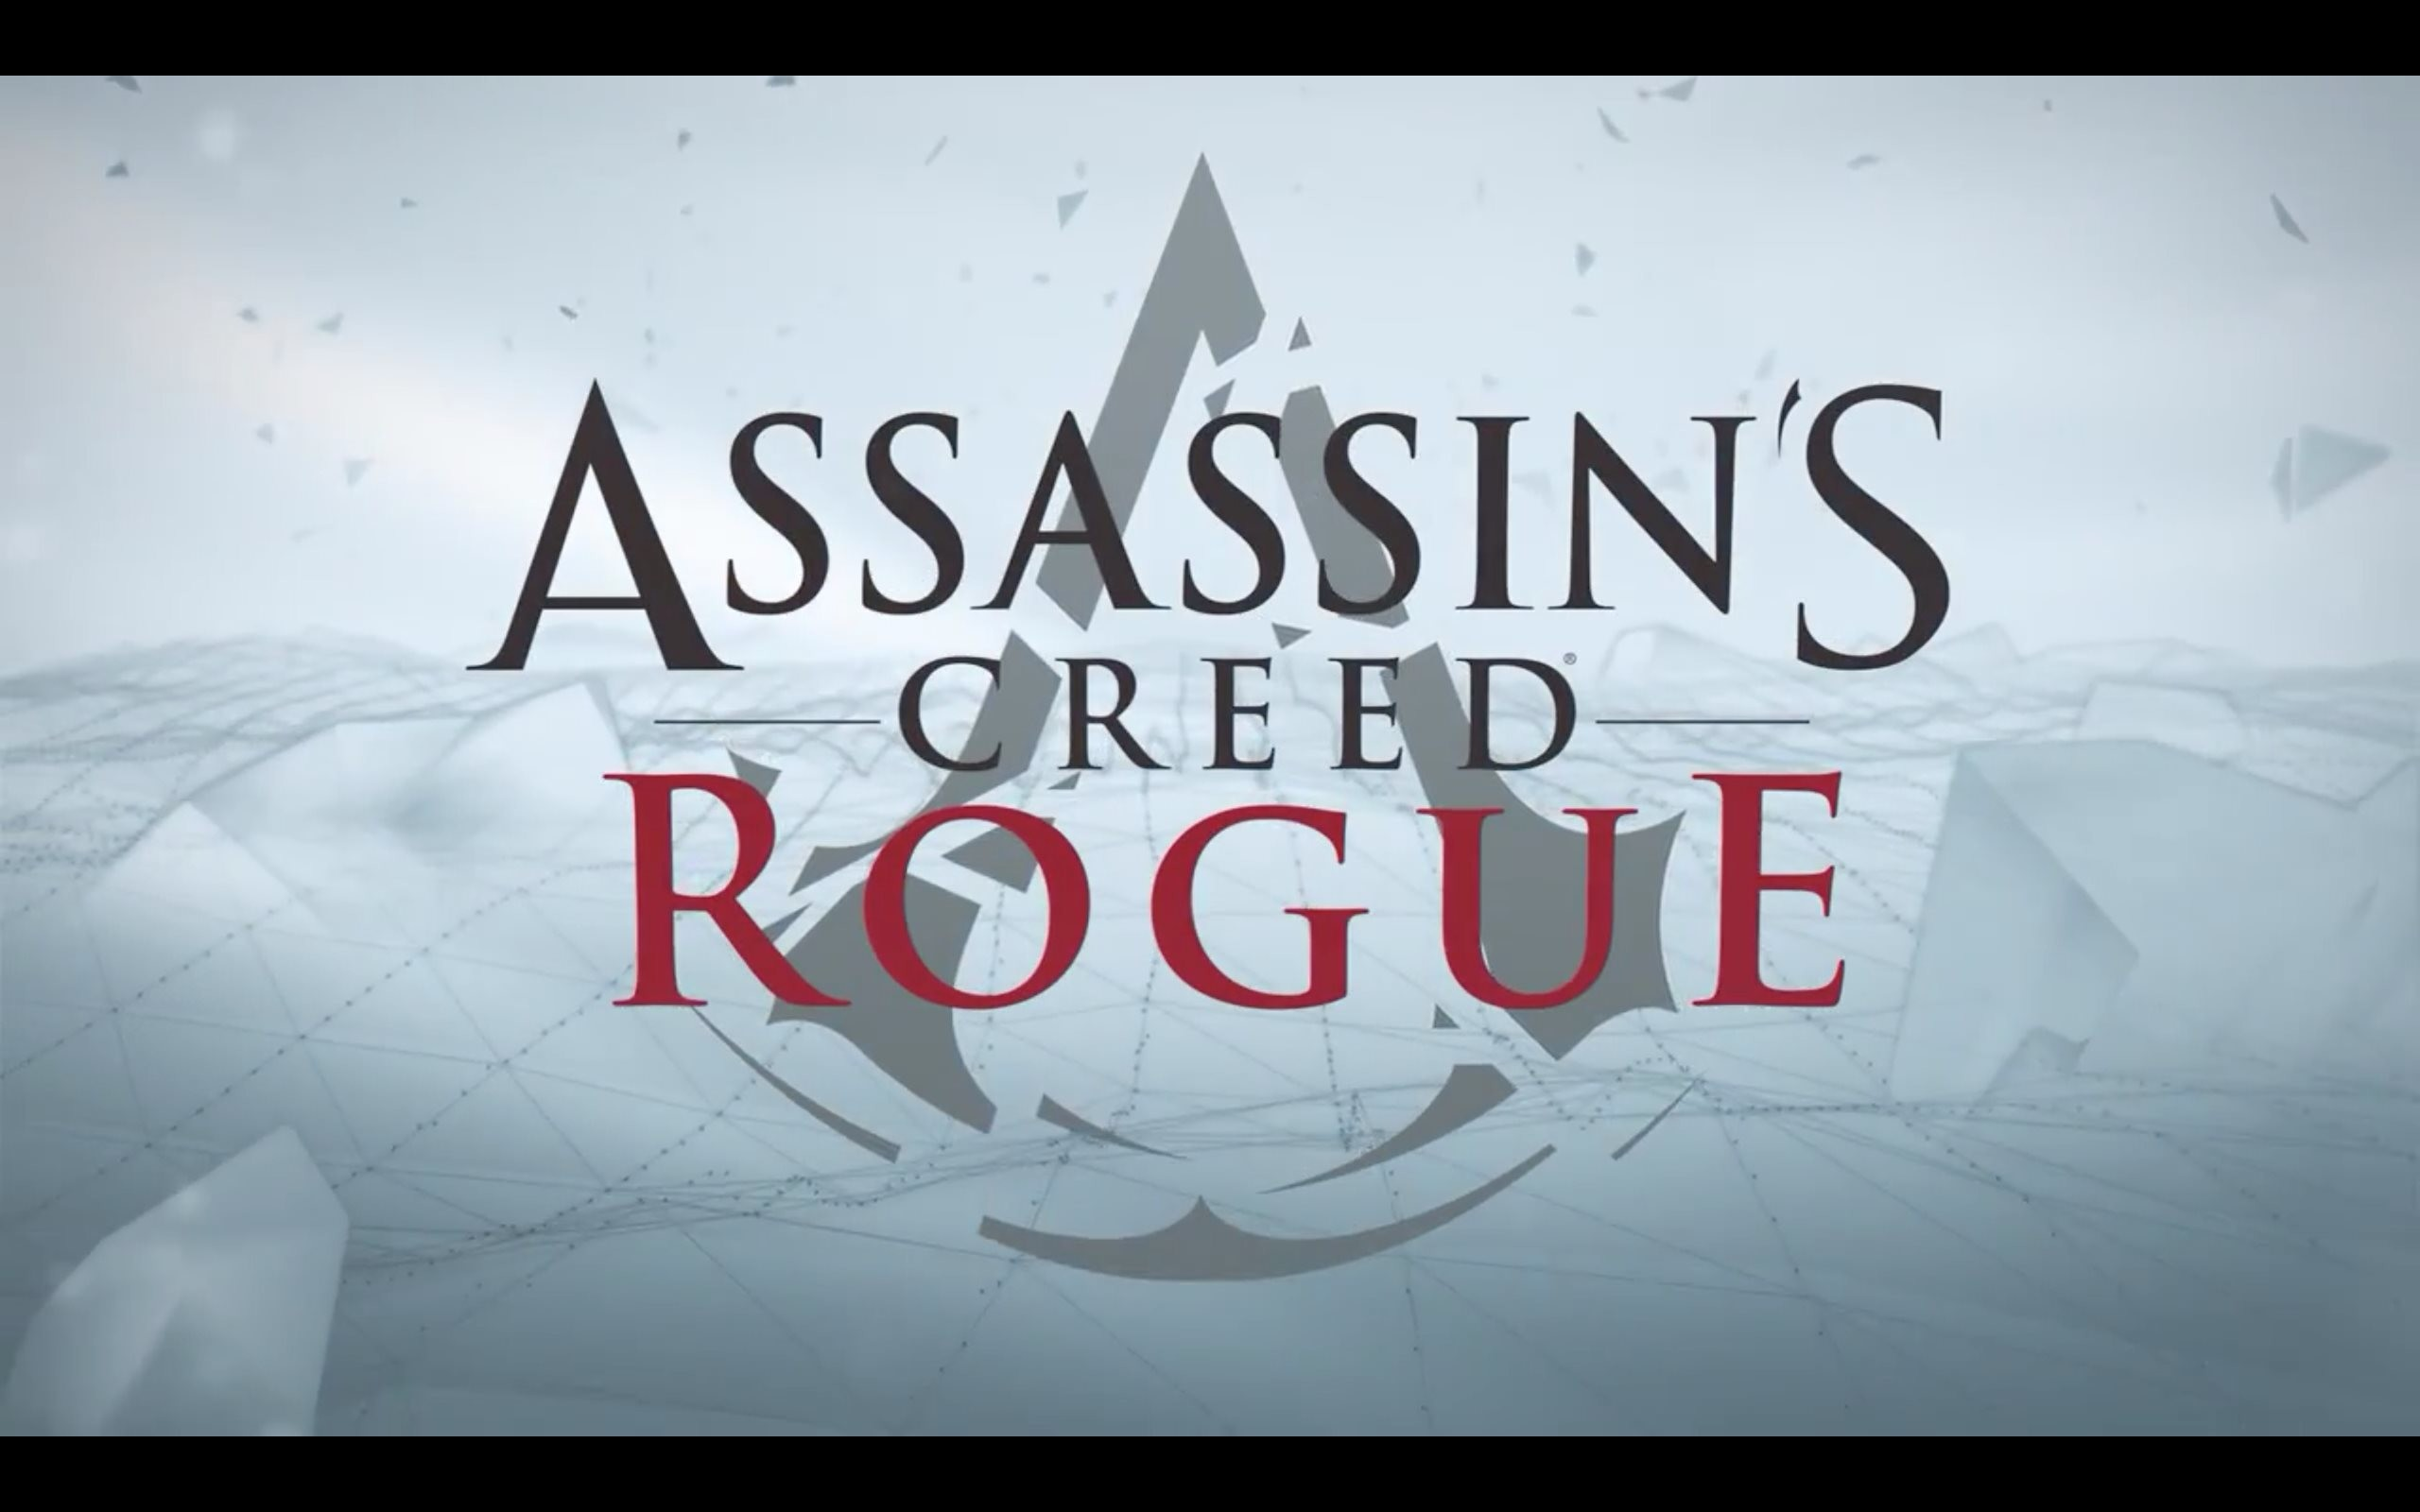 … on: 1920×1200, 1680×1050, 1440×900) Samsung Galaxy Tab & iPad:  2048×1536 (compatible with almost all tablets). Assassin's Creed Rogue …